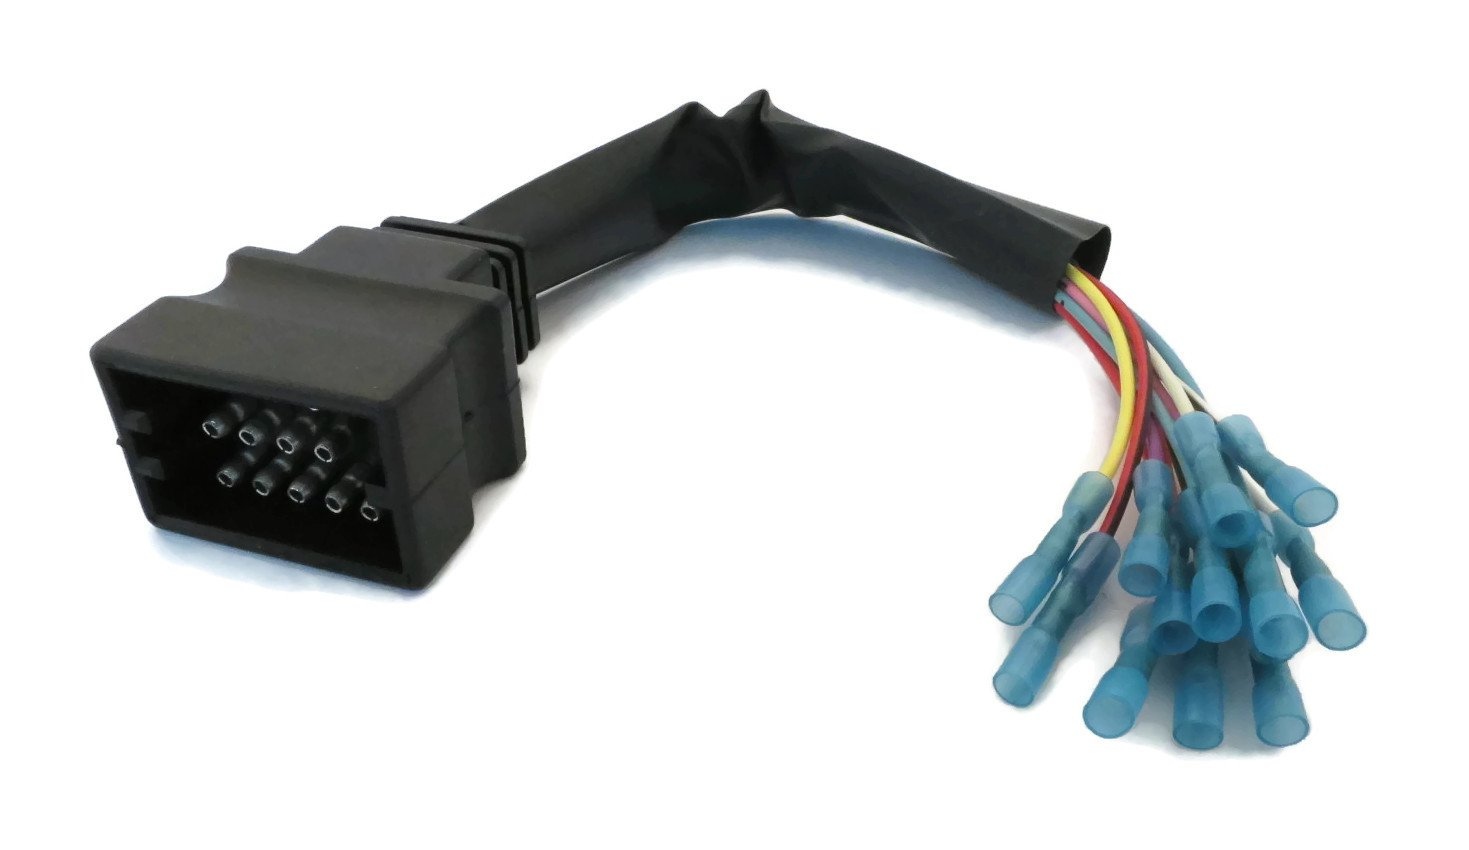 61IwZON%2BxQL._SL1469_ amazon com snow plow wiring harness repair kit (plow side how to repair a wiring harness at bakdesigns.co